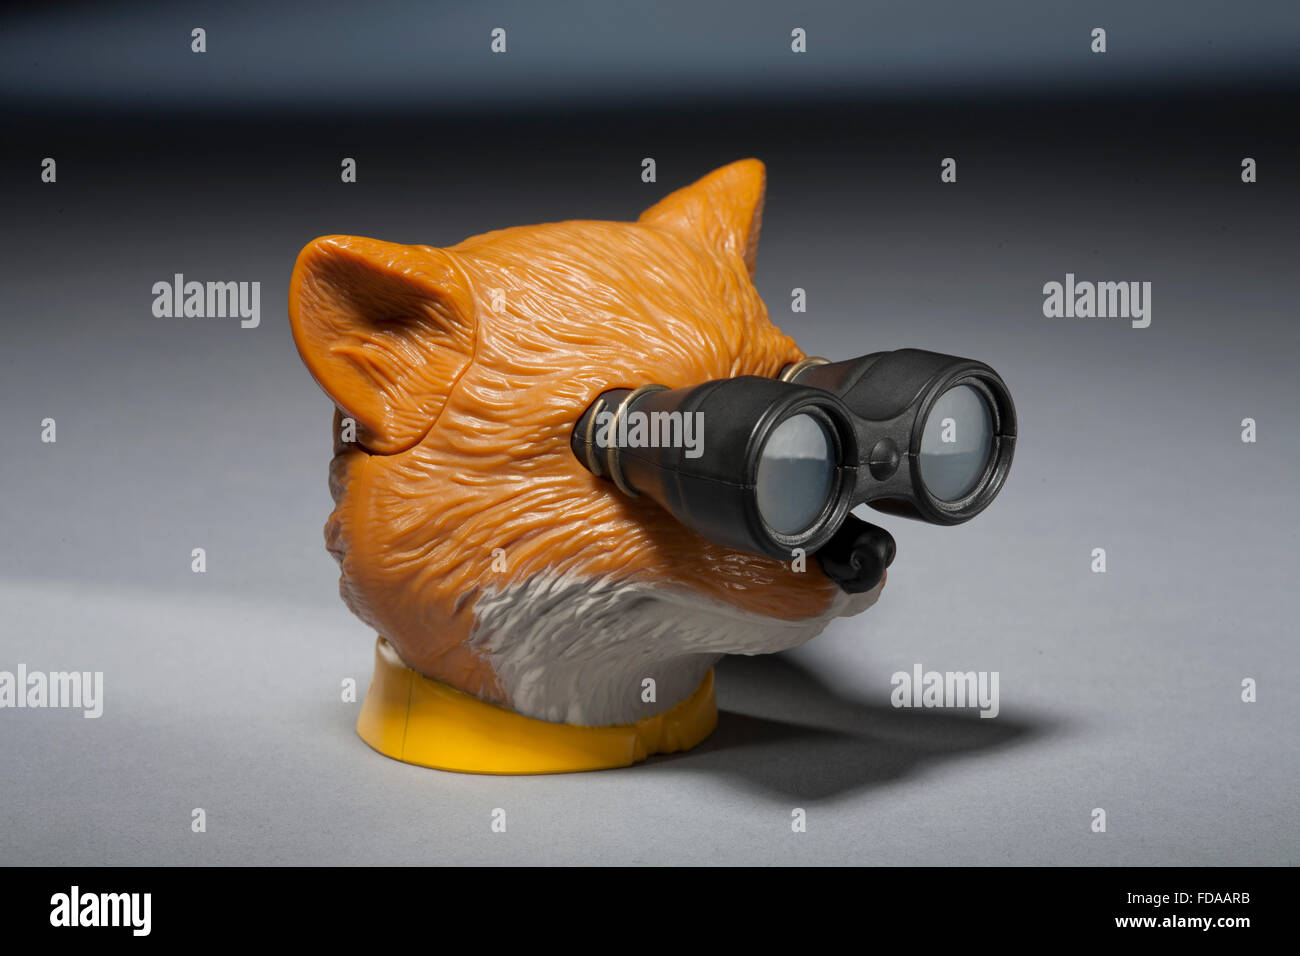 Fantastic Mr Fox toy viewer Photo Stock